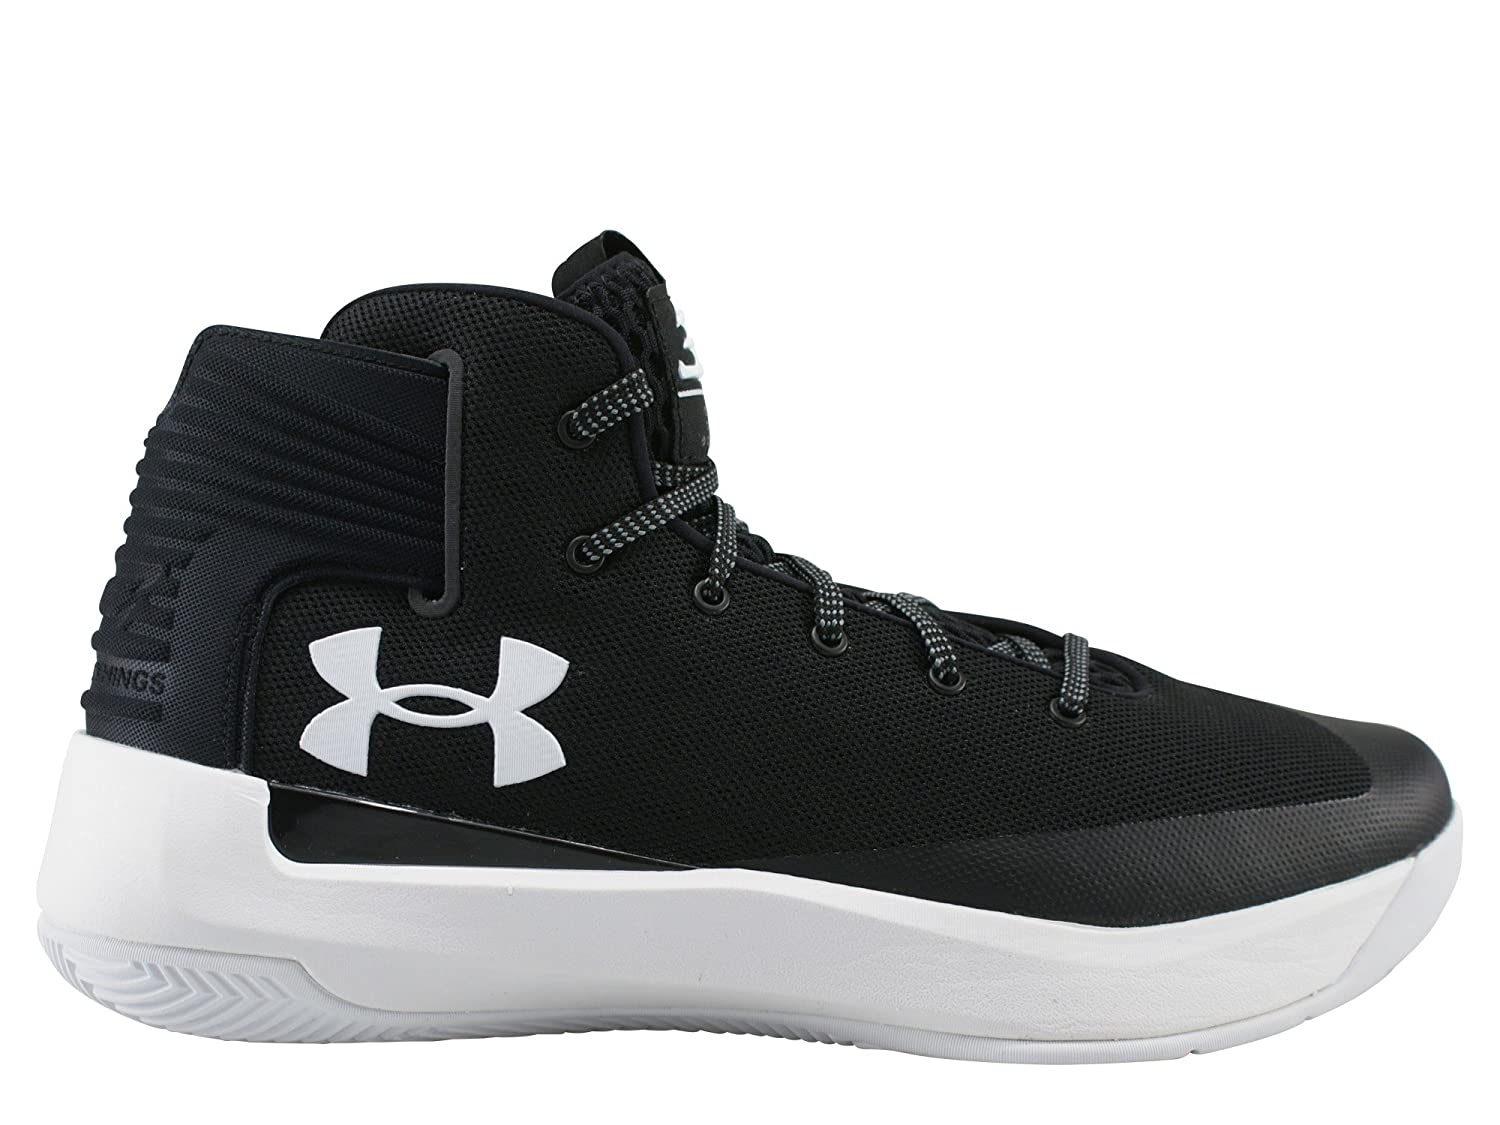 hot sales 42587 c80fd Amazon.com   Under Armour Men s Curry 3 Basketball Shoes   Basketball